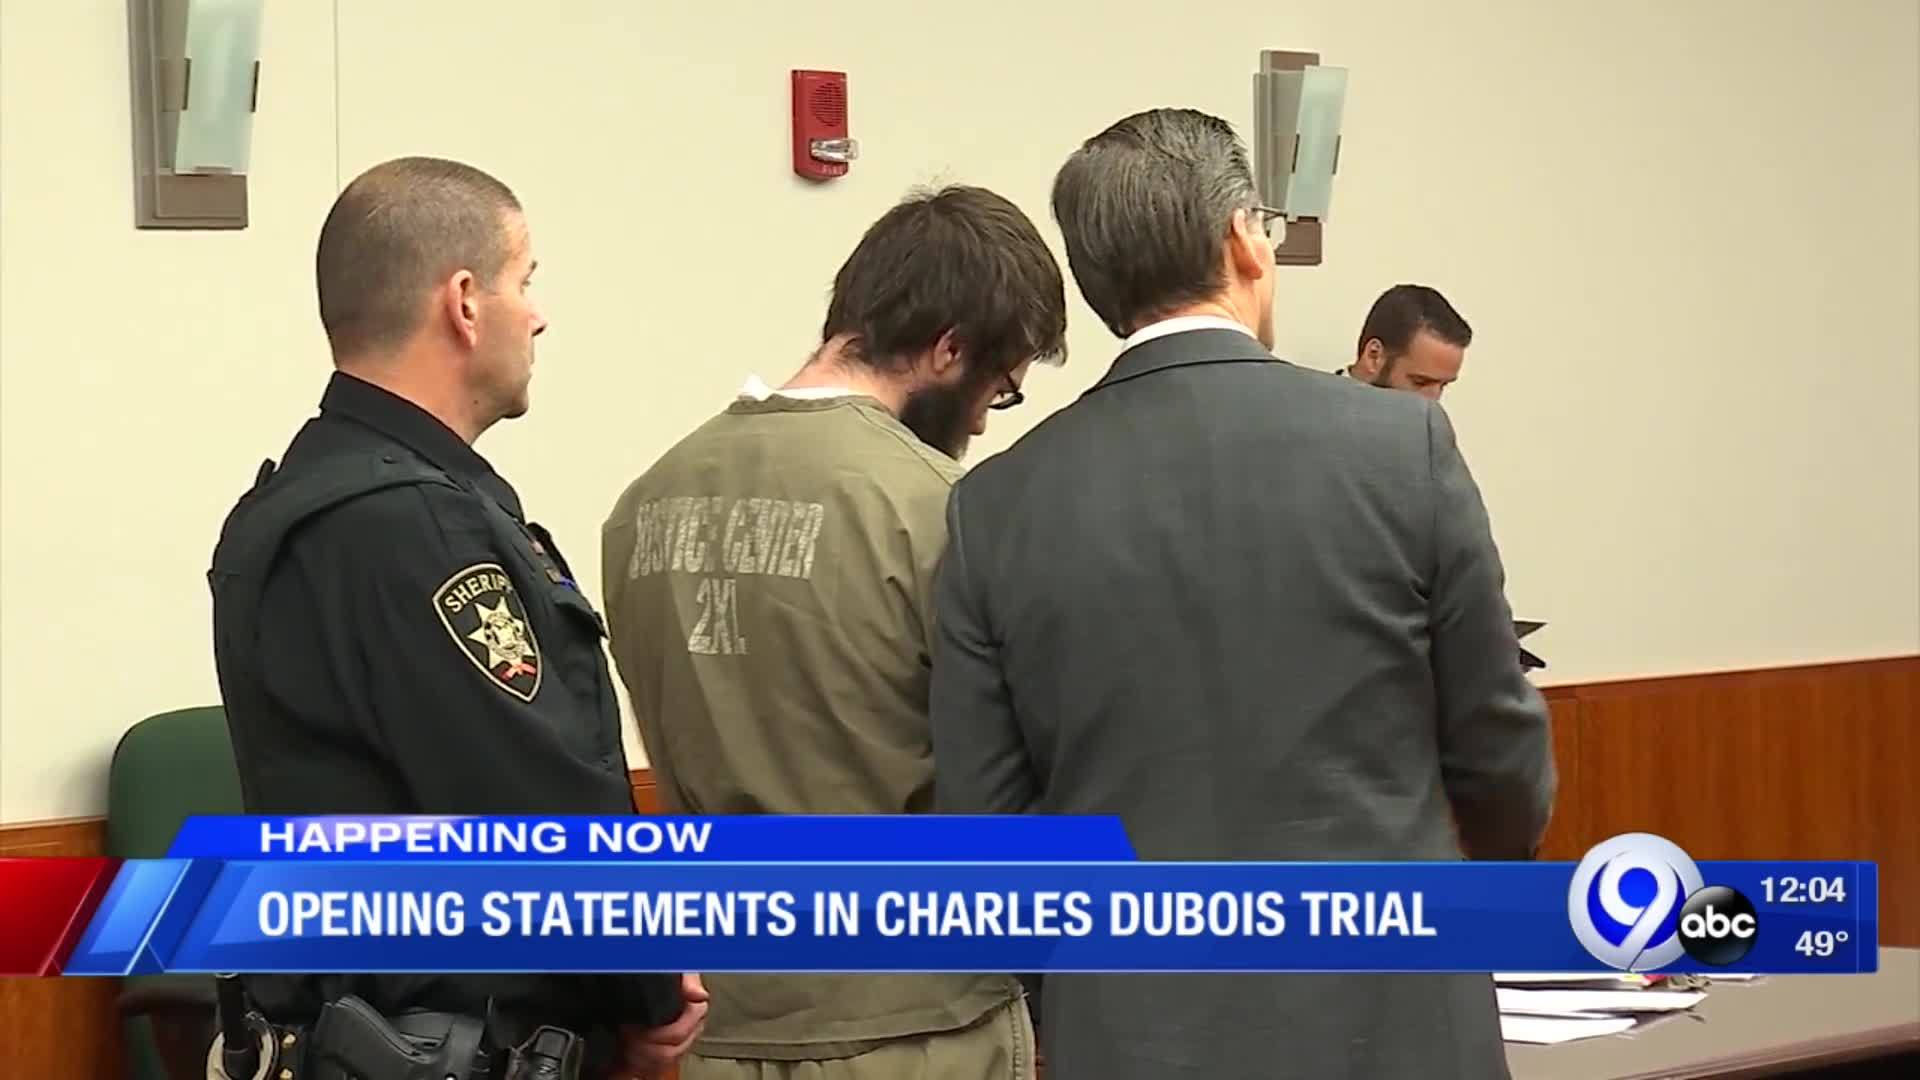 Opening_statements_underway_in_the_trial_7_20190501162154